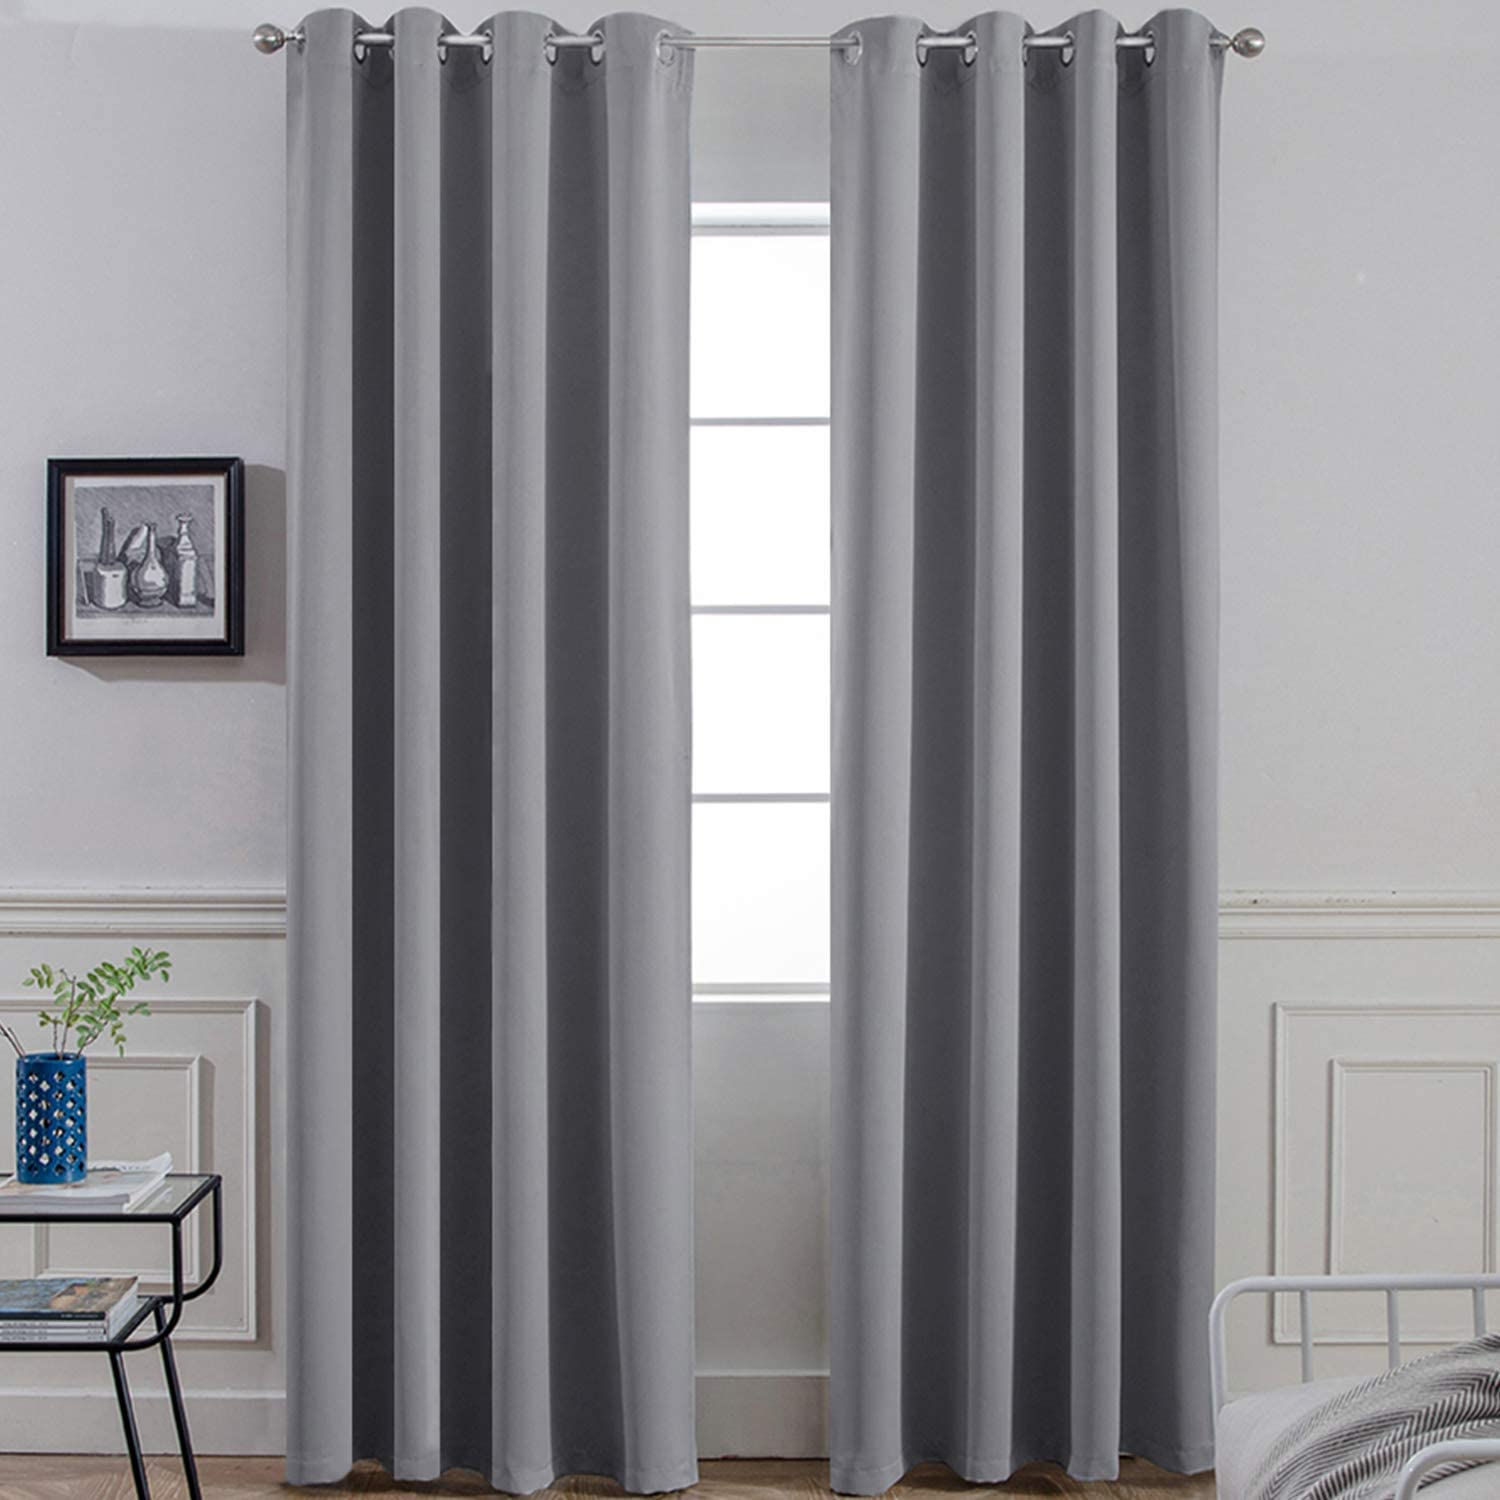 Yakamok 96 Inches Thermal Curtain Panels Gray Blackout Curtains Room Darkening Window Drapes with 8 Grommets,Grey, Set of 2, 2 Tie Backs Included